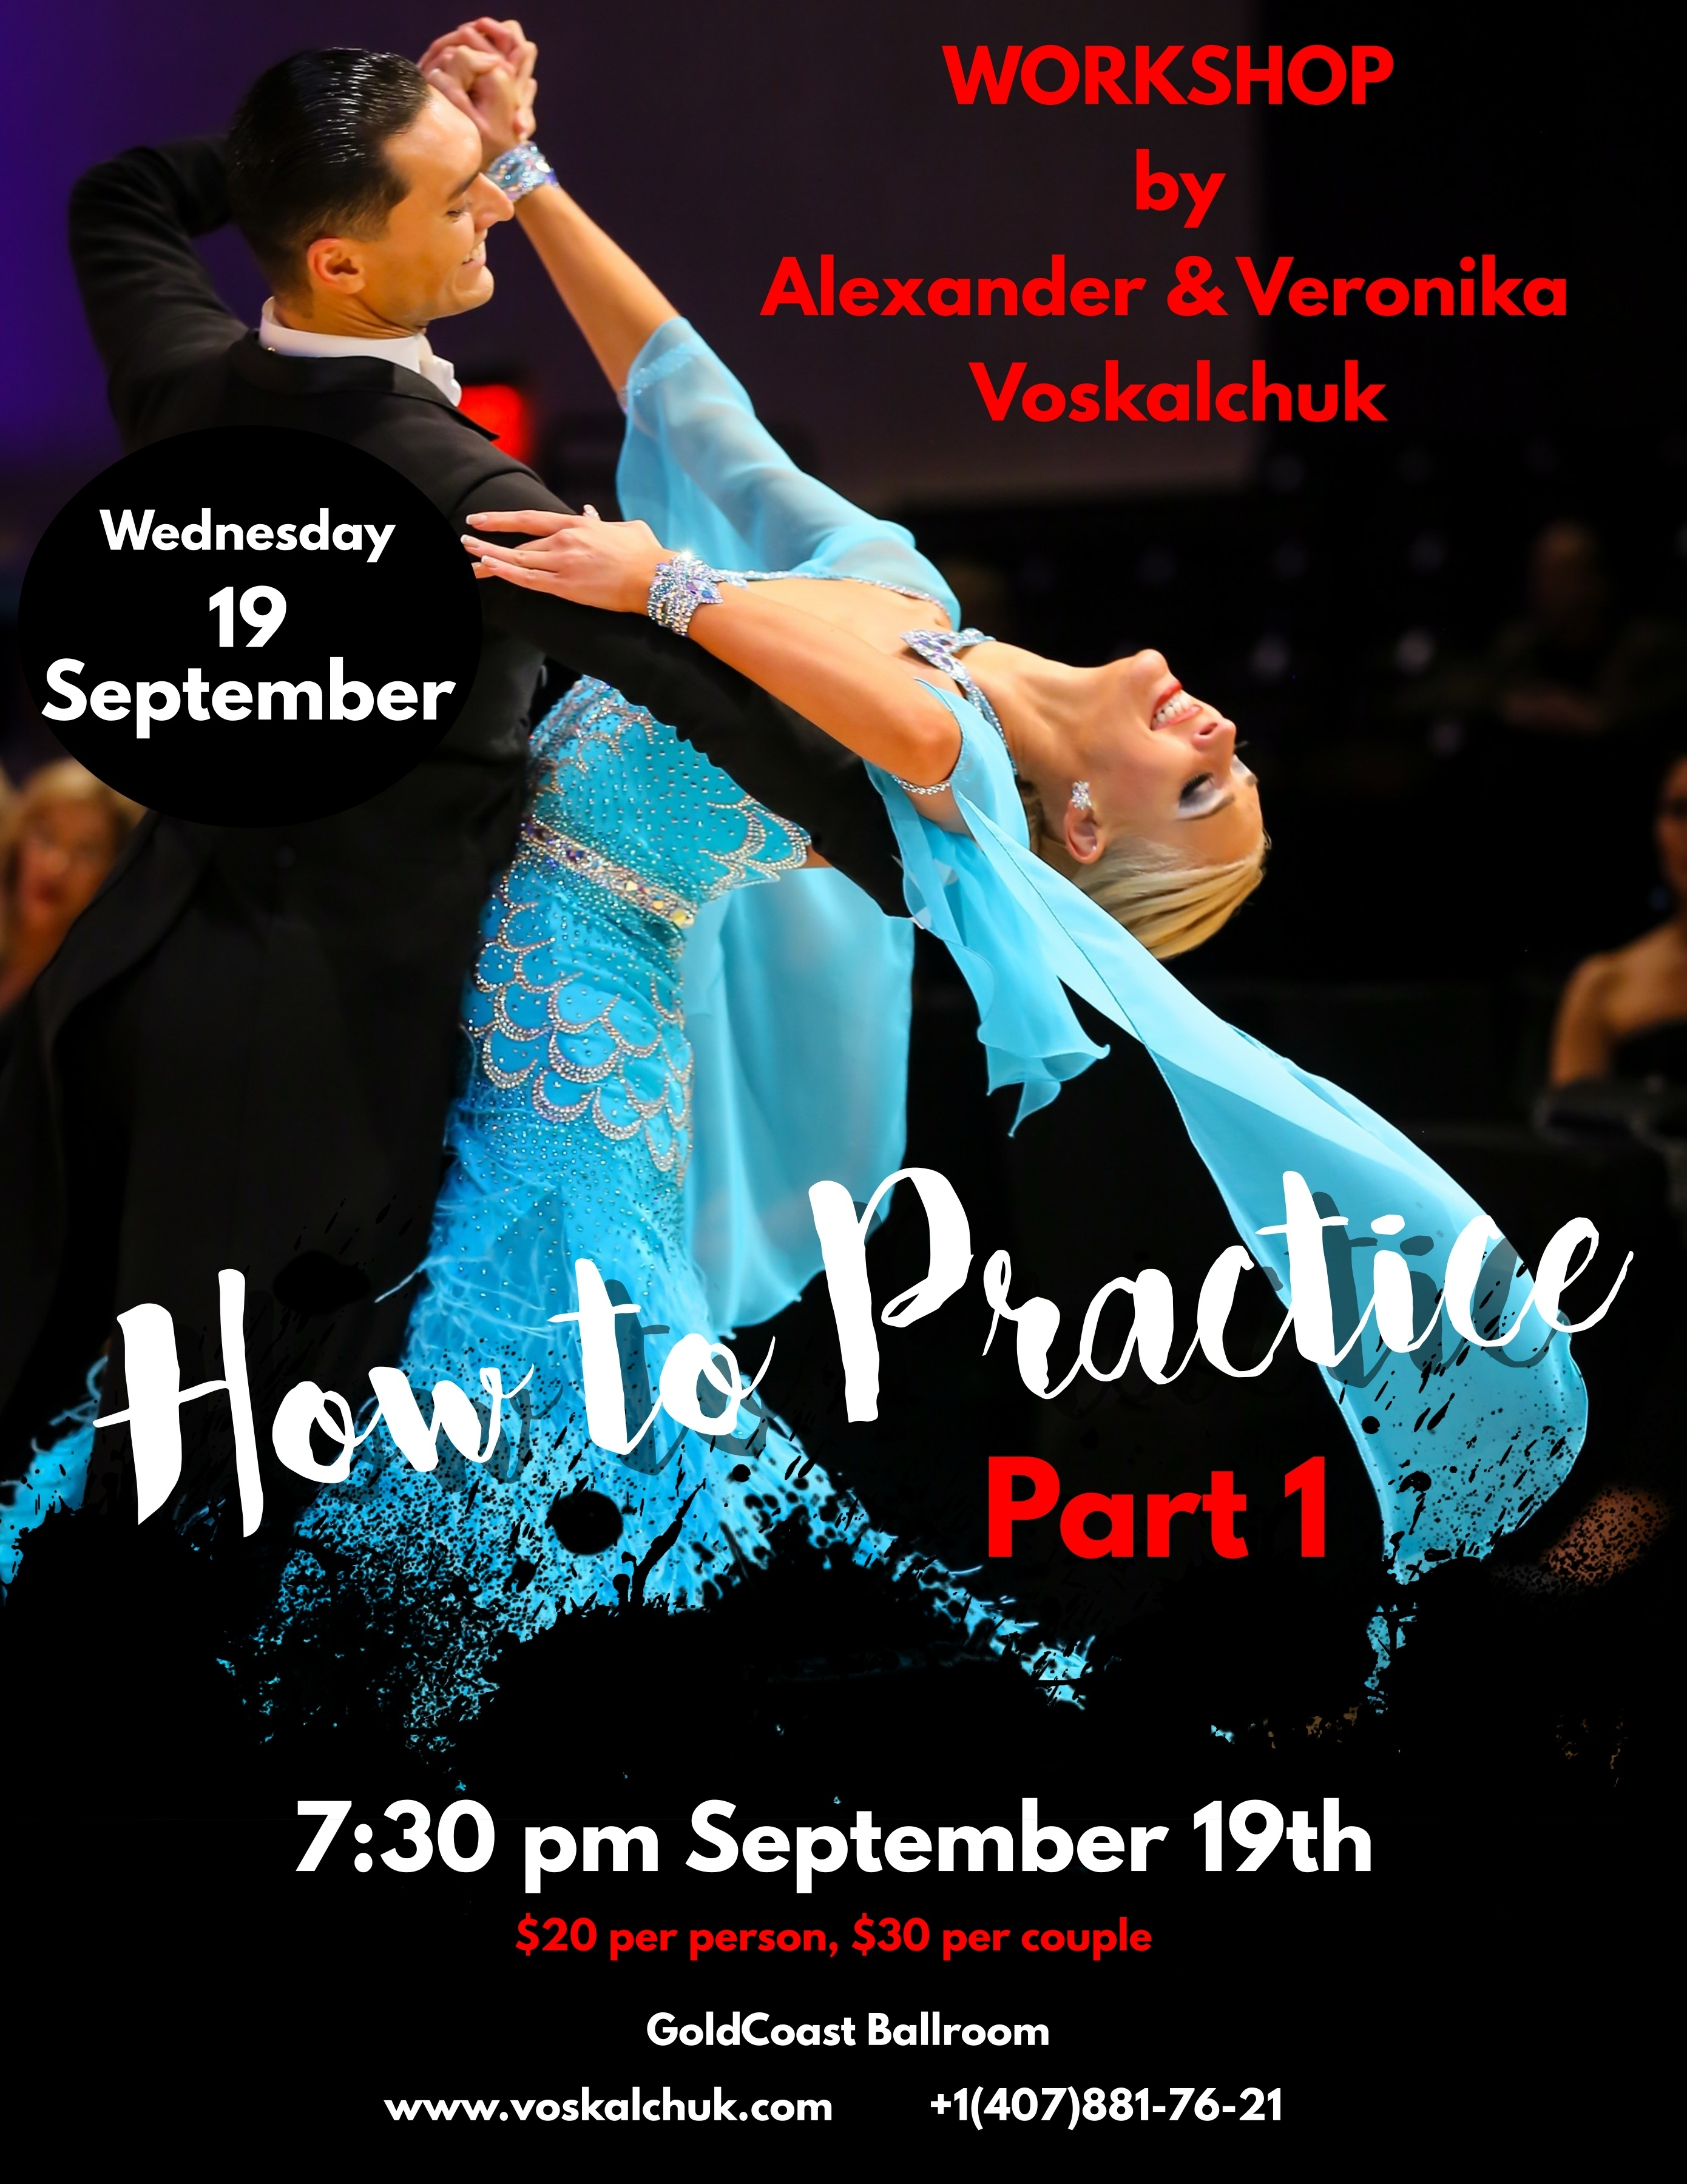 Alexander & Veronika Voskalchuk - September 19, 2018 Workshop - How to Practice (Part 1) - at Goldcoast Ballroom